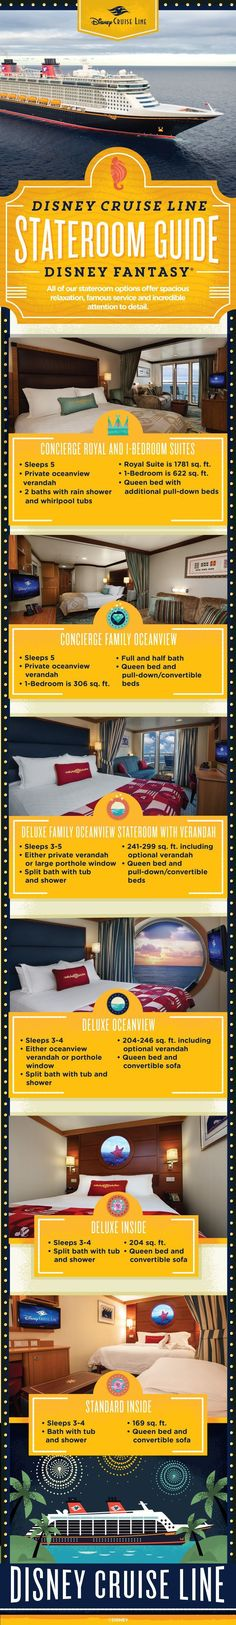 All Disney Cruise Line stateroom options offer spacious relaxation, famous Guest service and incredible attention to detail. Check out this handy guide to see which stateroom is best for your family onboard the Disney Fantasy!  For more information on Disney Cruise Line, see: http://www.disneywebcontent.com/index.php?msid=10918